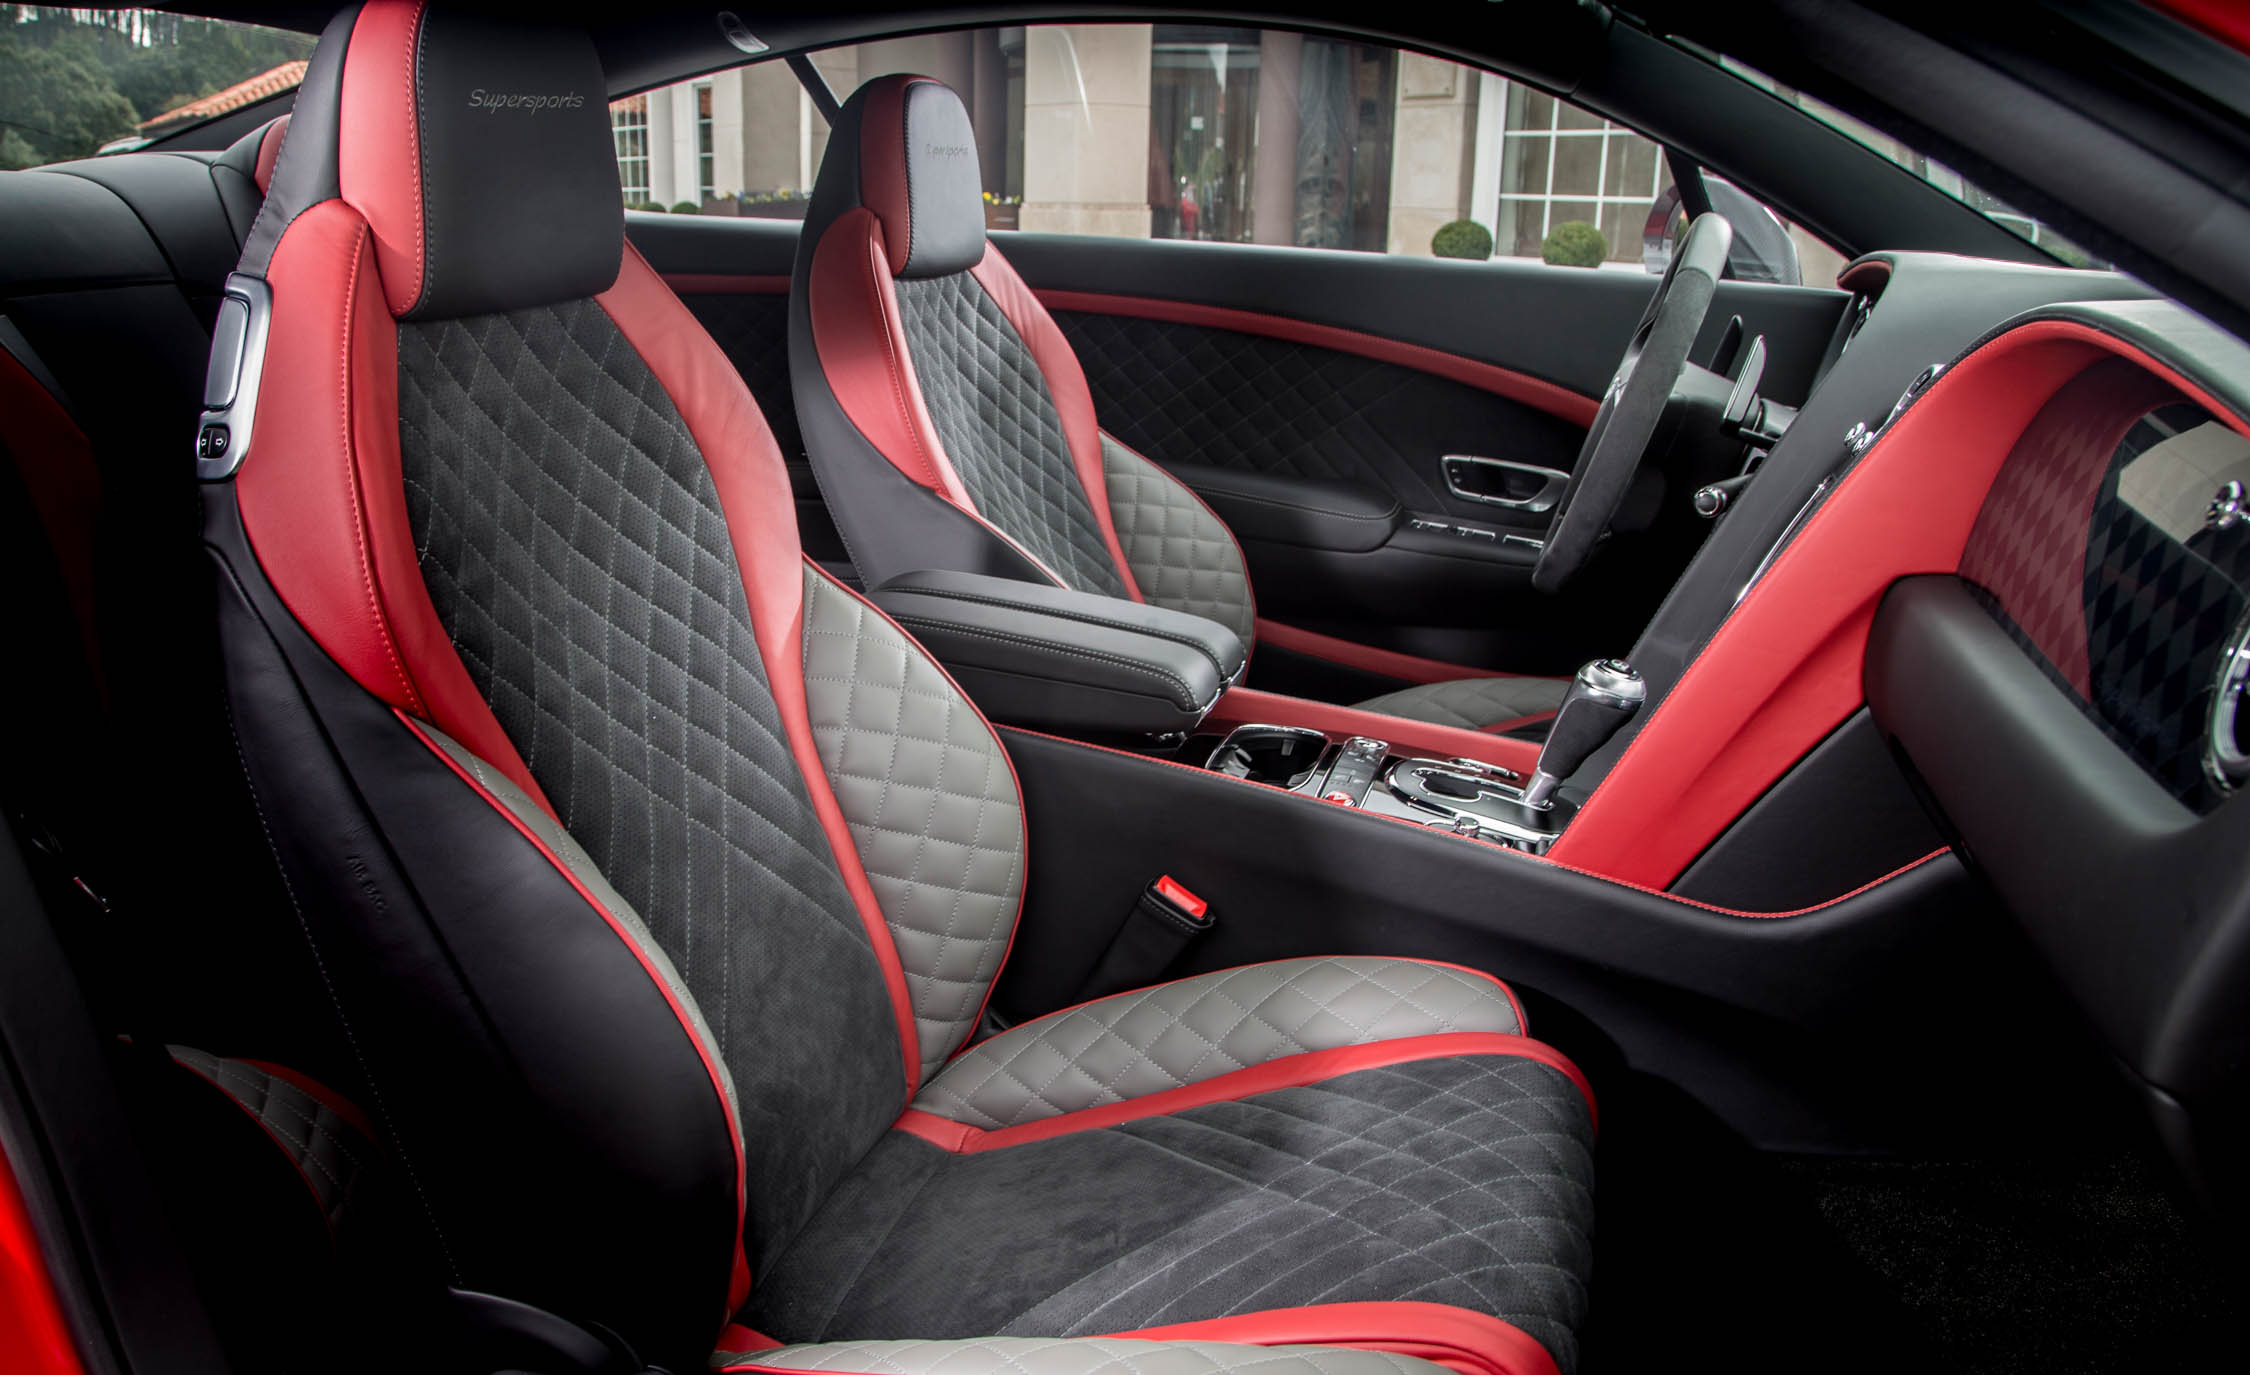 2018 Bentley Continental Supersports Interior Seats Front (View 8 of 66)